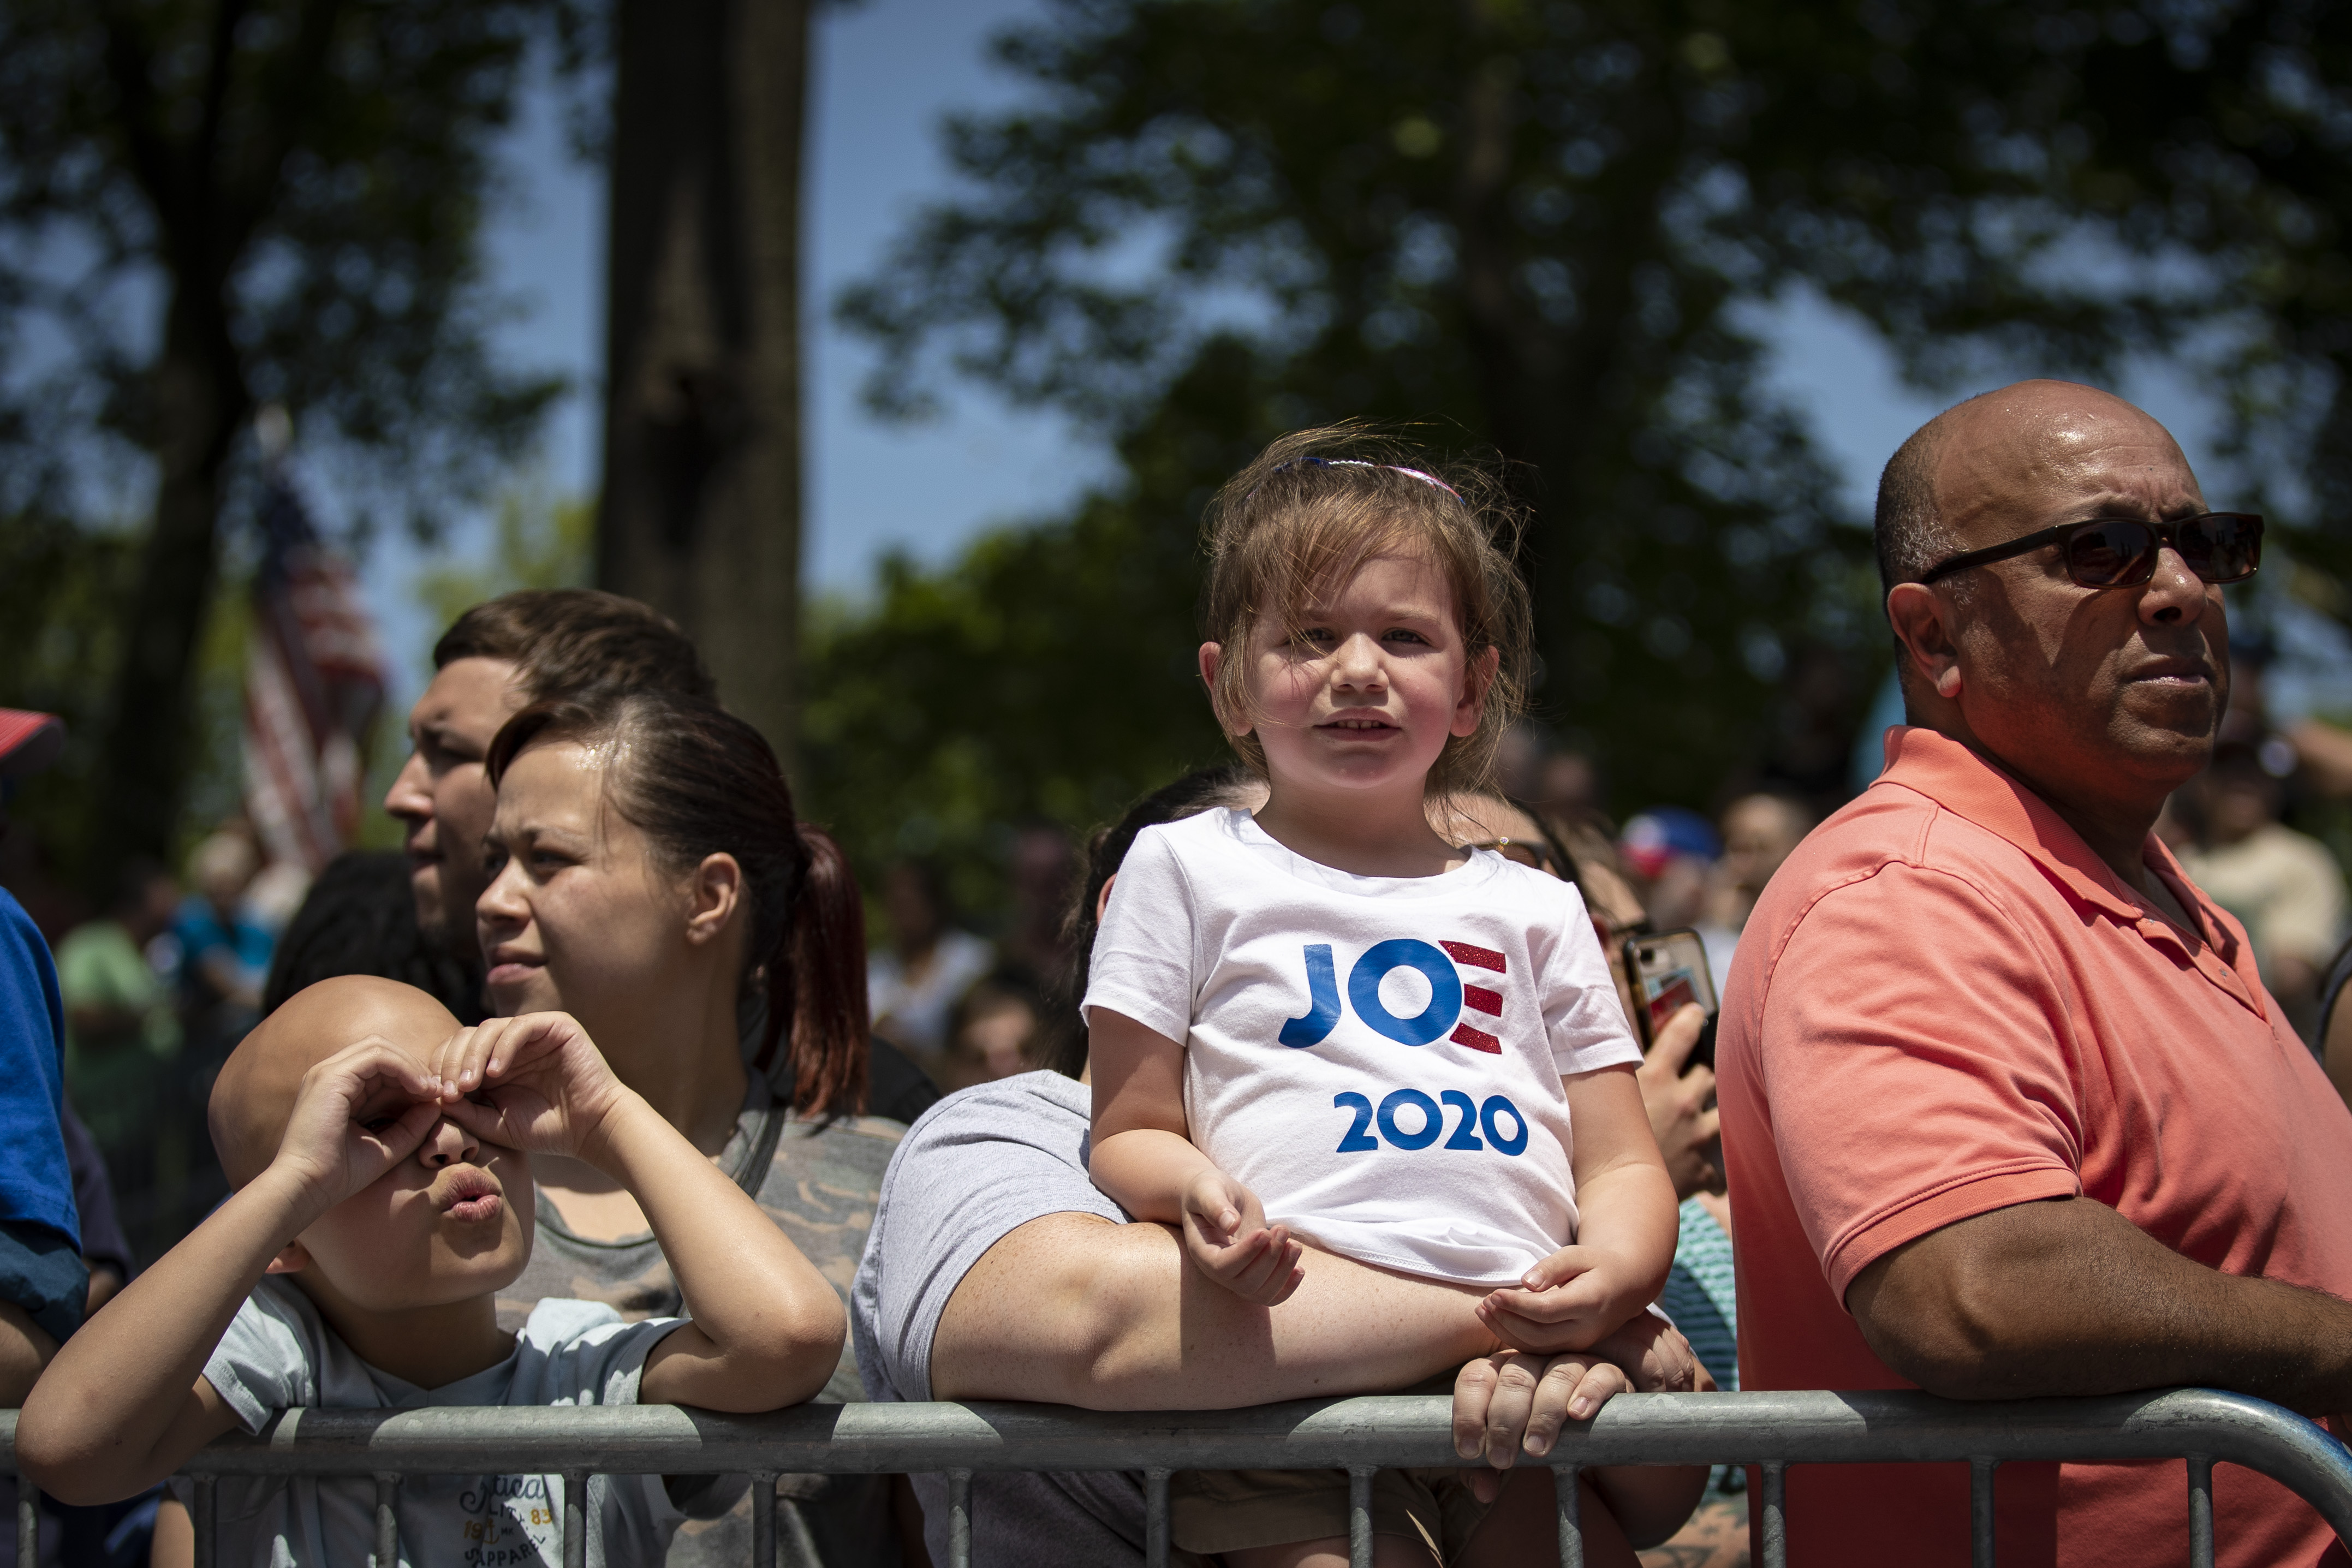 The crowd waits for former U.S. Vice President Joe Biden to arrive during a campaign kickoff rally, May 18, 2019 on Philadelphia, Pennsylvania. (Photo by Drew Angerer/Getty Images)